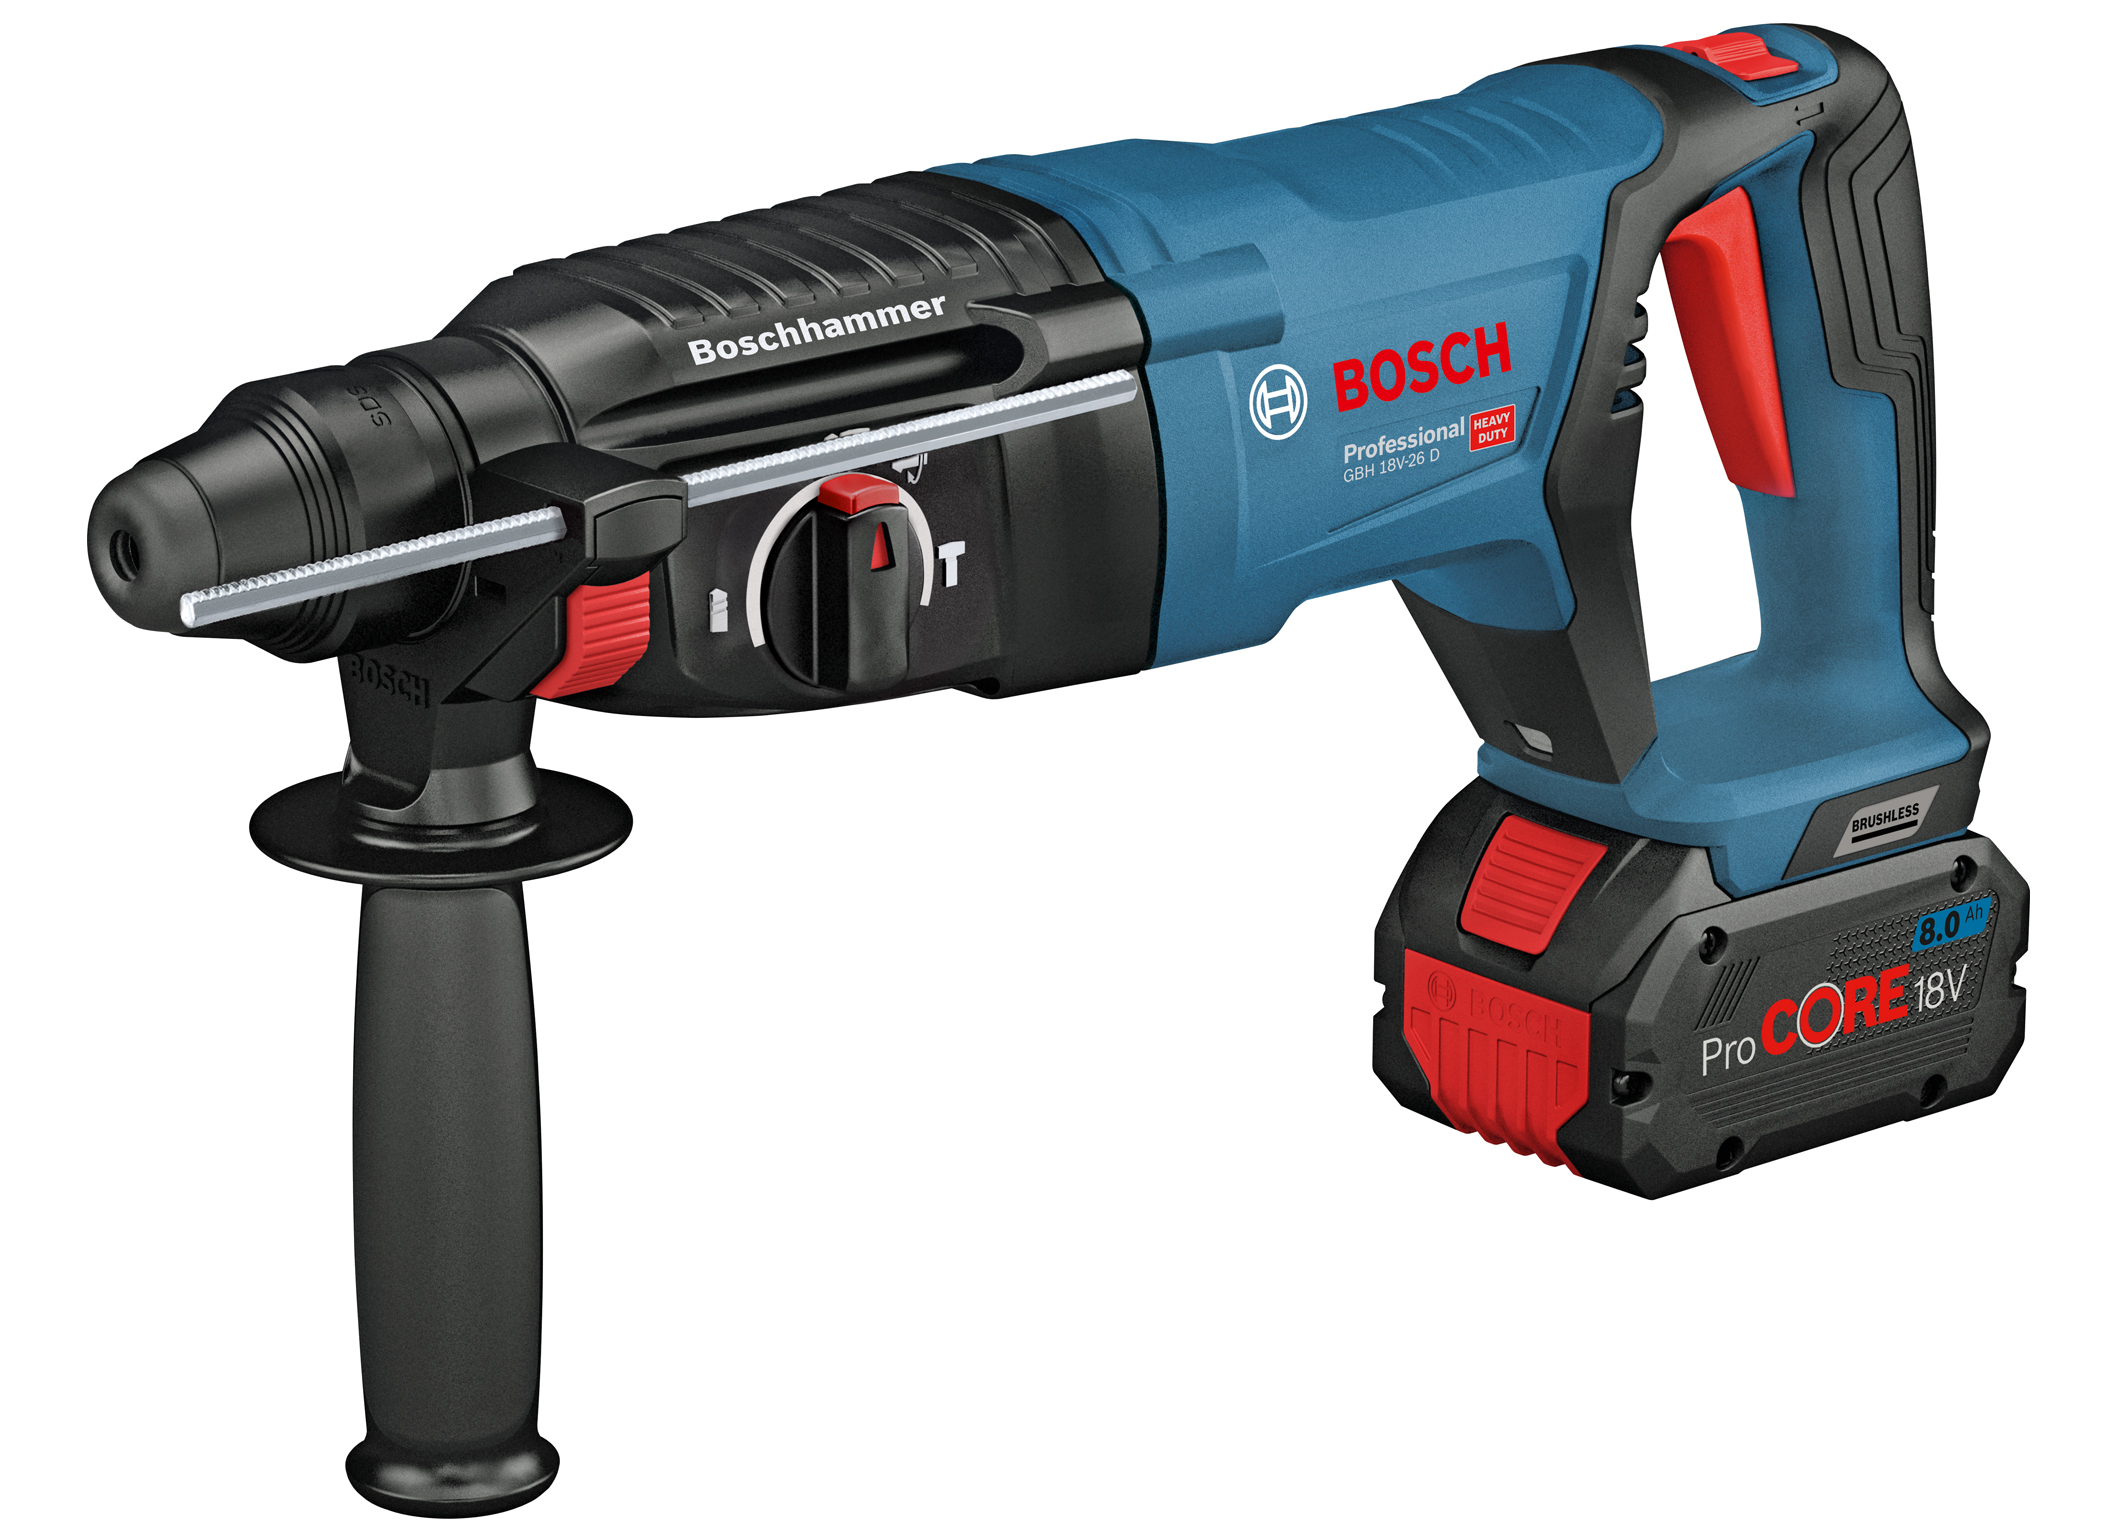 As powerful as the corded equivalent: 18 volt rotary hammer GBH 18V-26 D Professional from Bosch for professionals